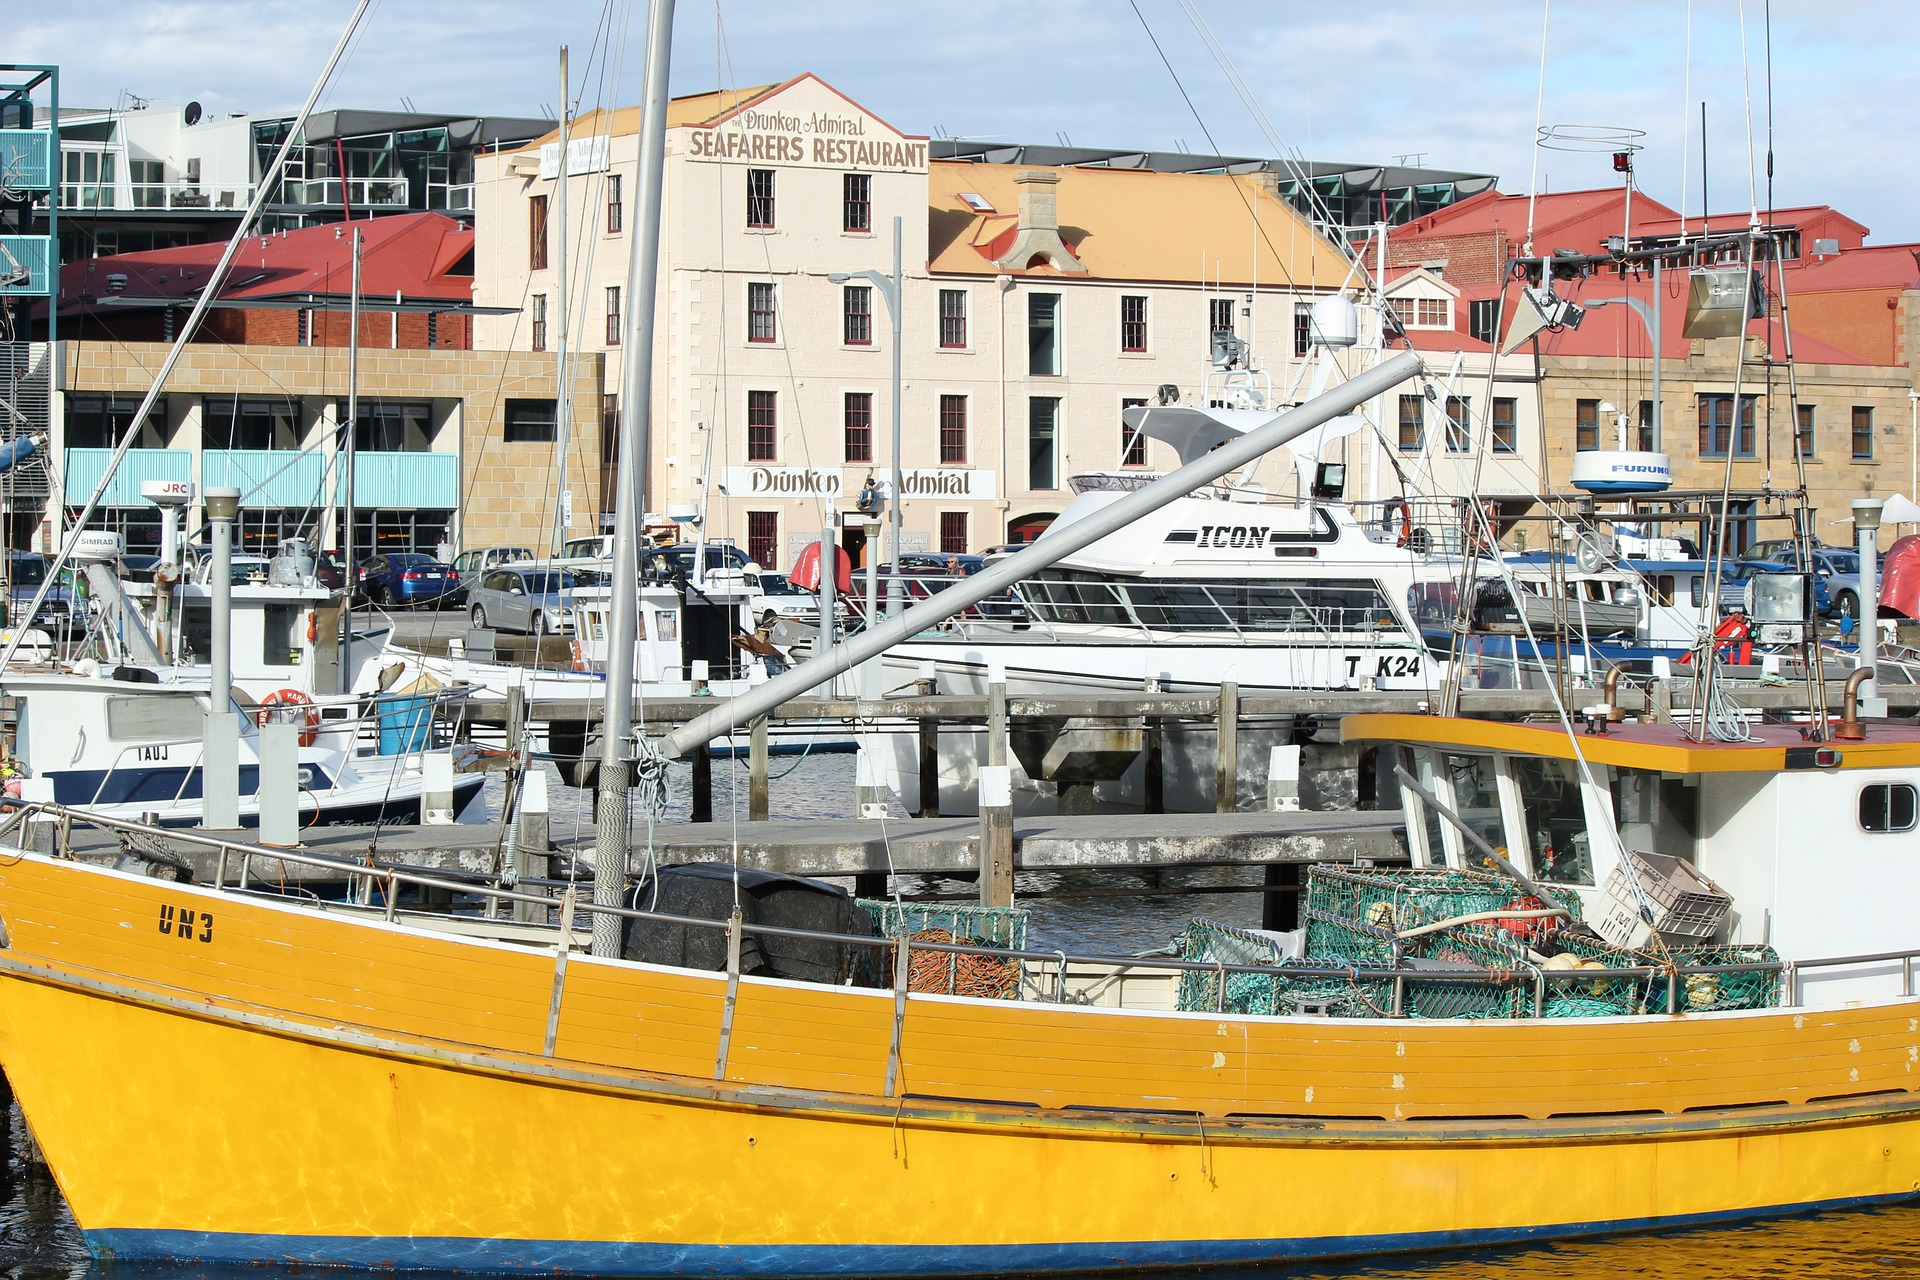 yellow and white boat resting at a busy dock, city buildings in background